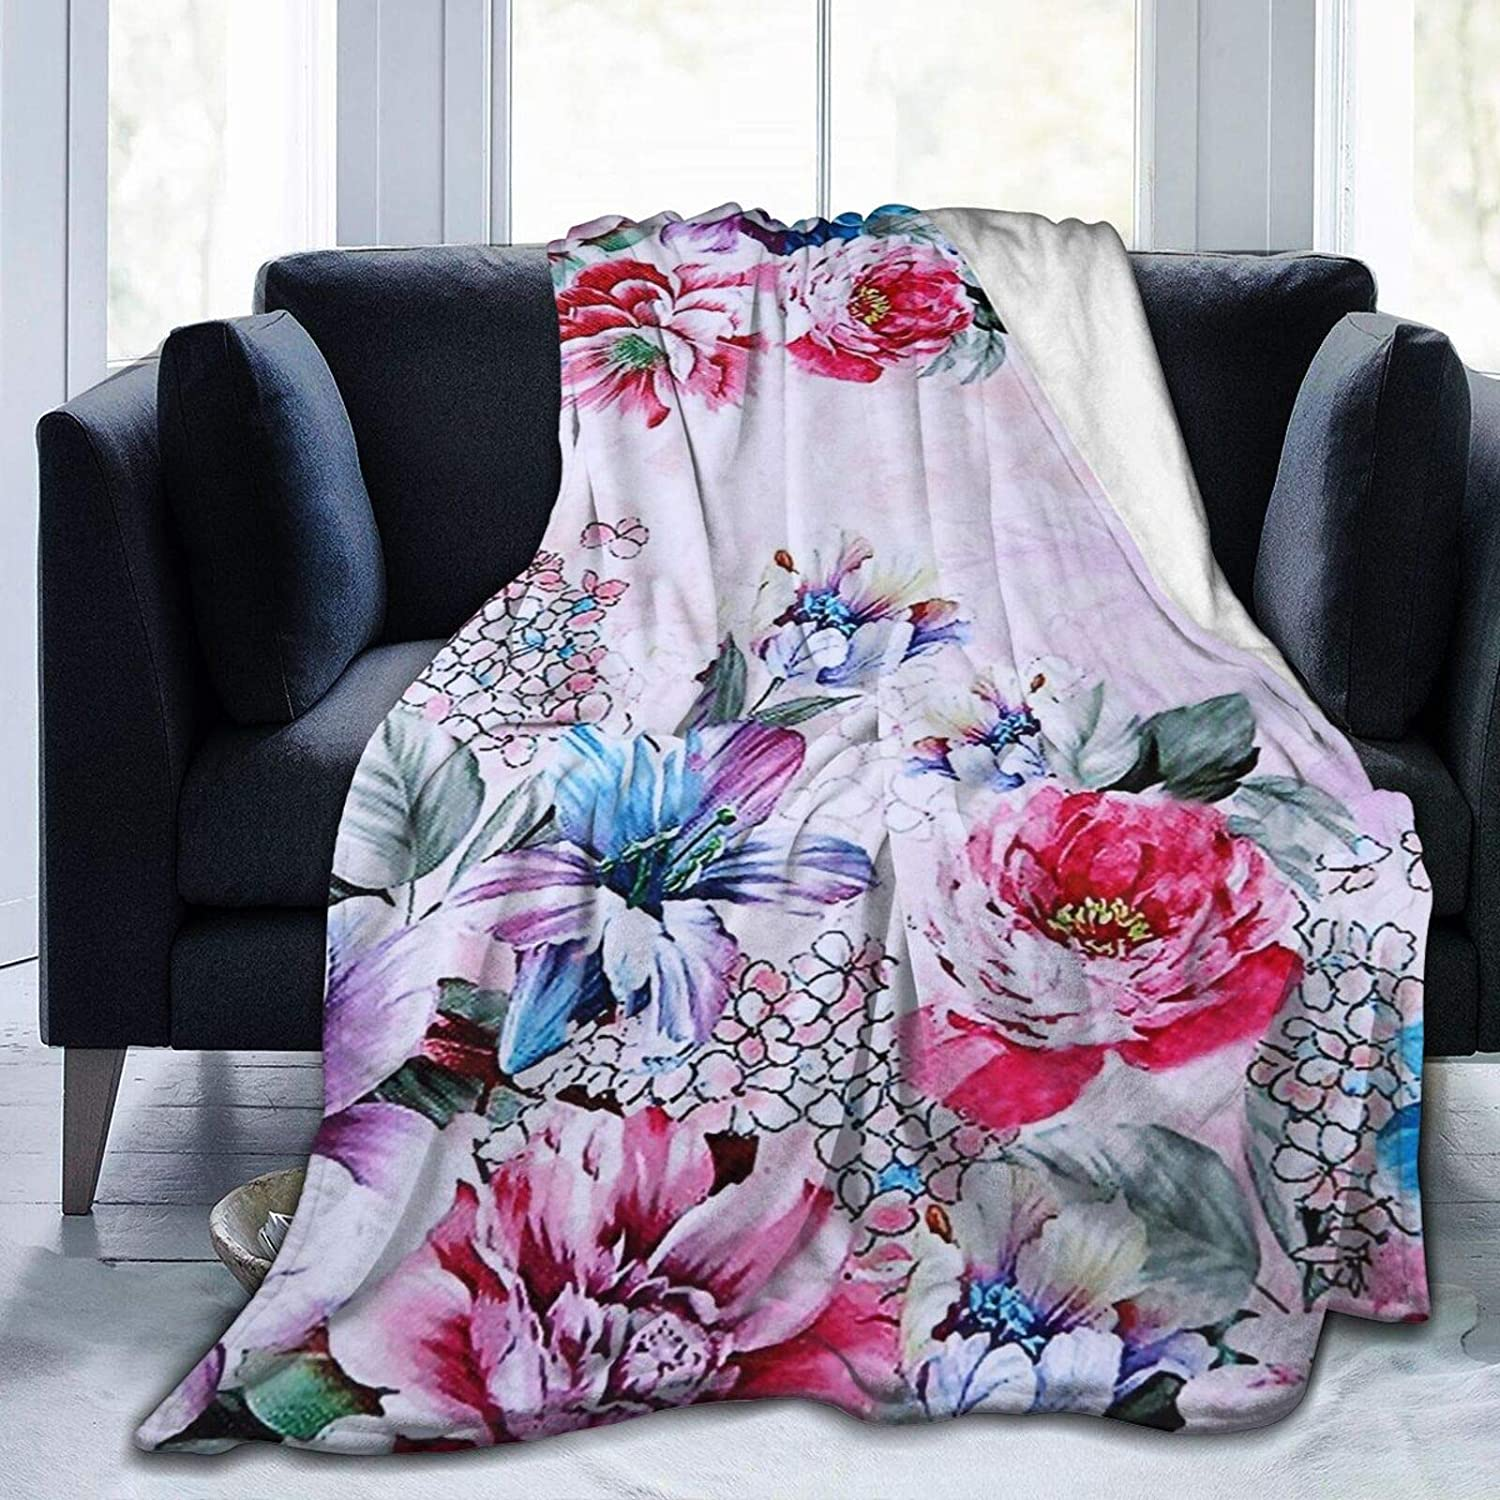 Kimisoy Max 64% OFF Blanket Wild Rose Bargain Breathable Thr Pattern Flannel